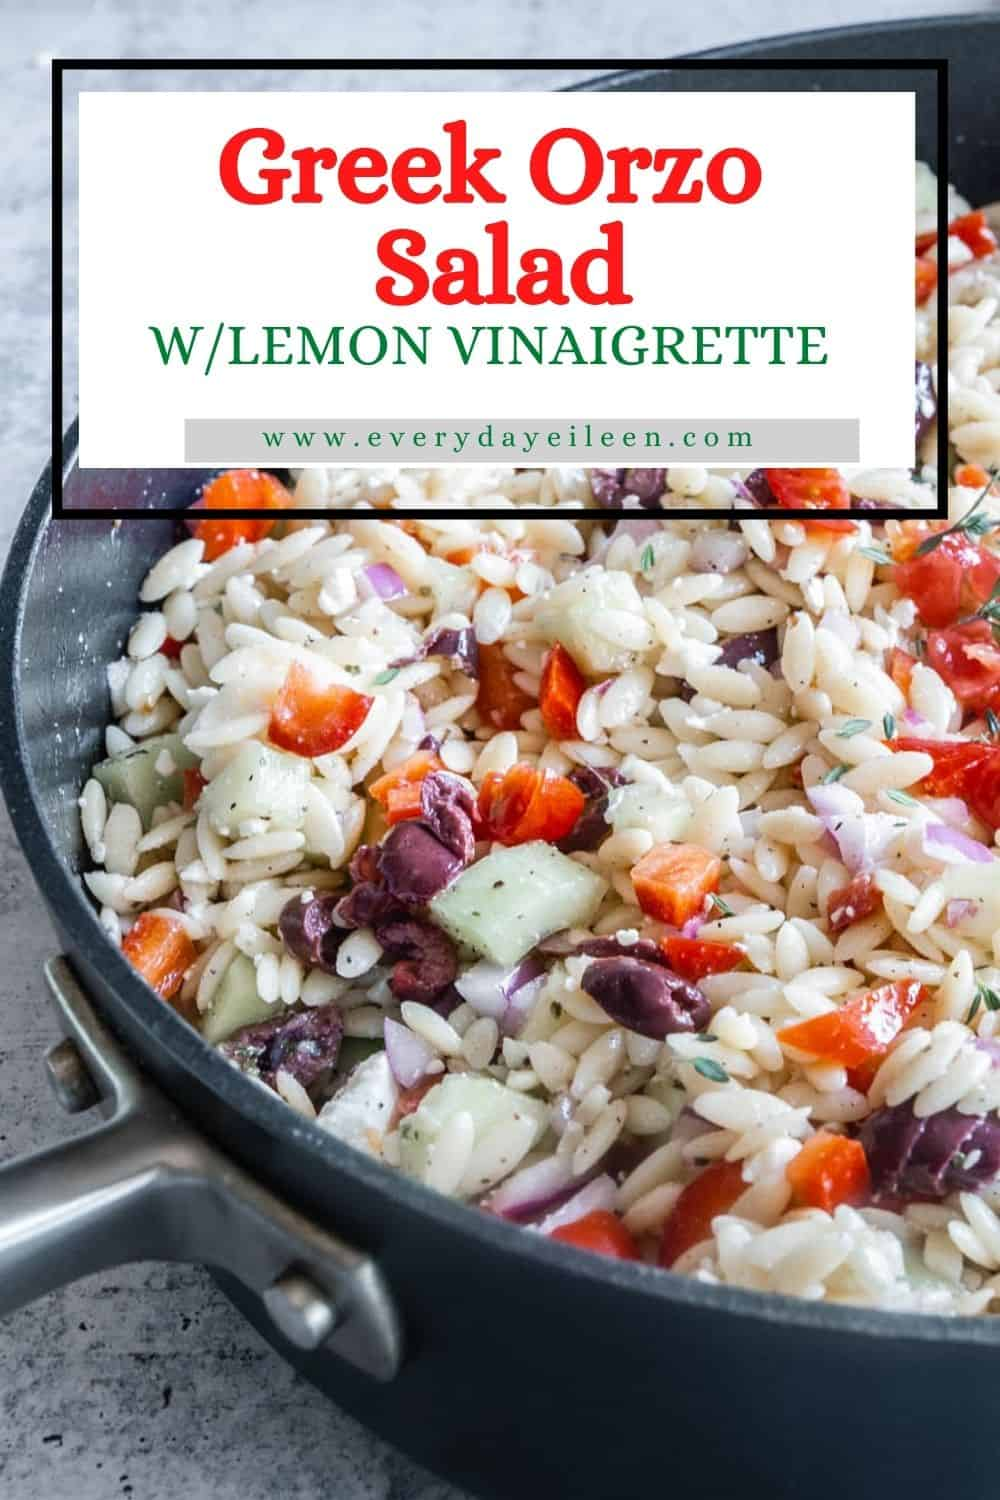 Greek Orzo Salad with homemade lemon vinaigrette.A great make ahead pasta salad for a family dinner. Perfect for pot lucks, BBQ's summer parties, family gatherings. Vary the salad by adding your favorite proteins such as chicken and shrimp for a complete pasta dinner. via @everydayeileen